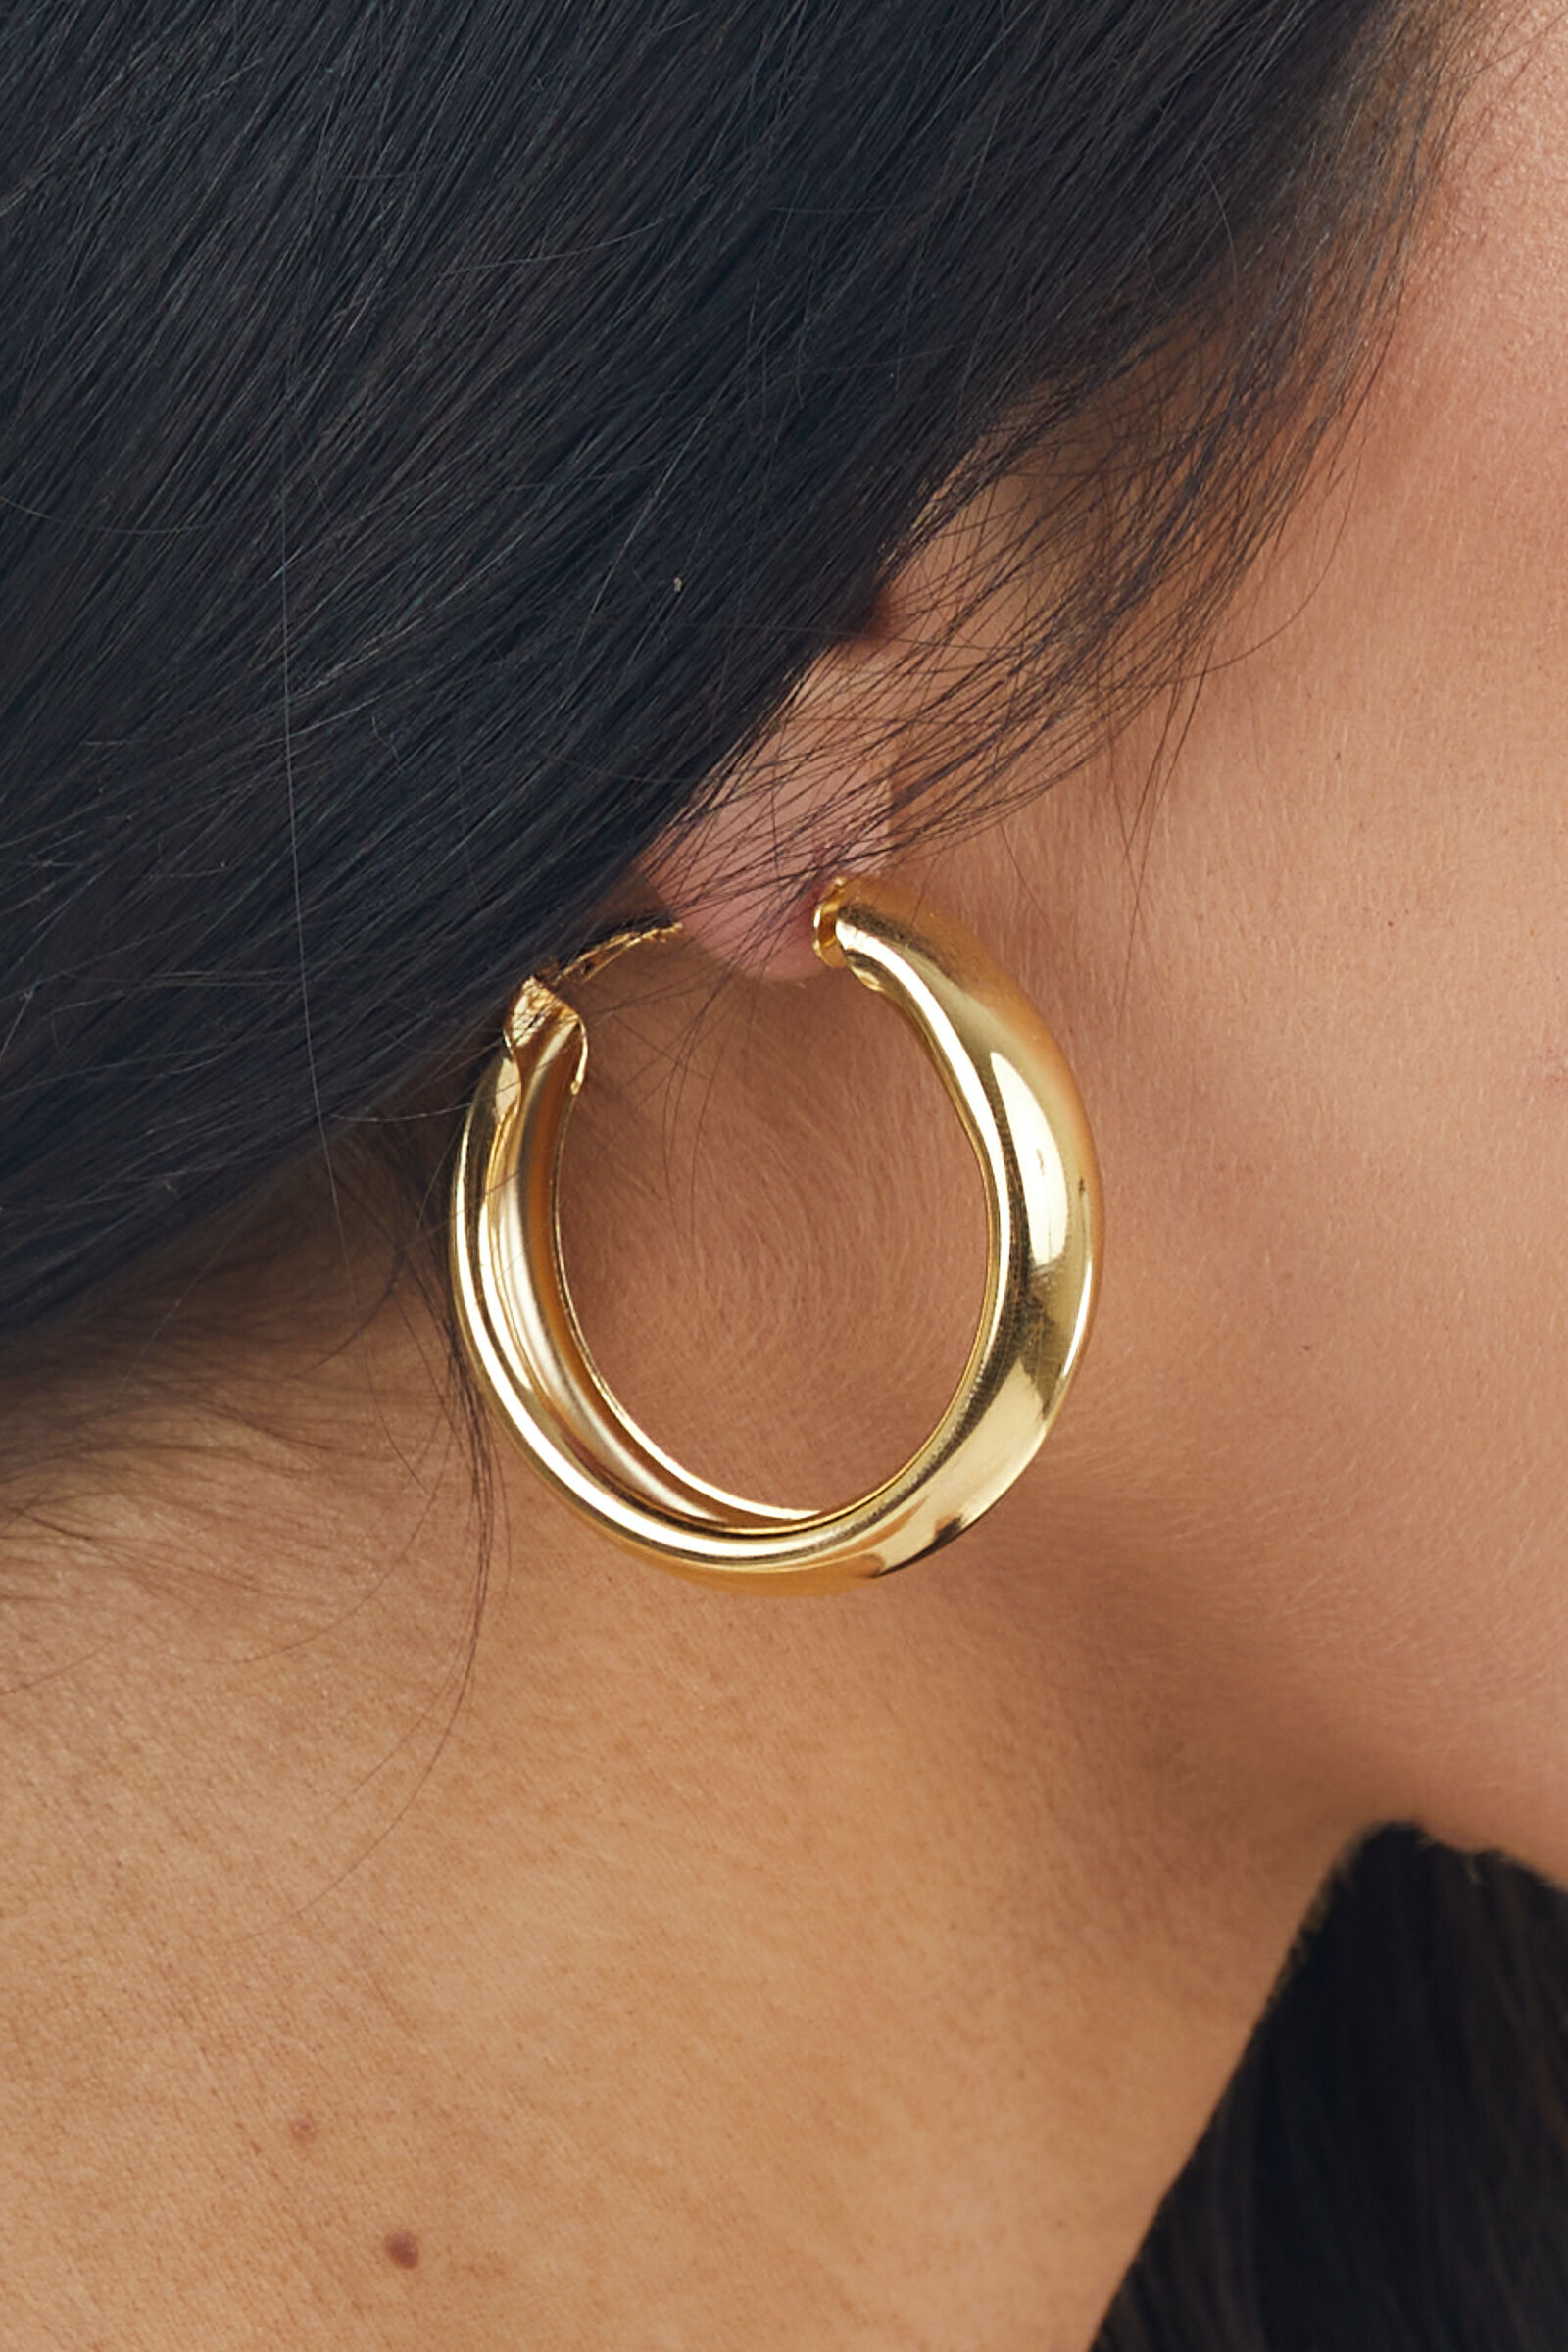 Shiny Gold Metallic Thick Hoop Earrings with Wire Closure